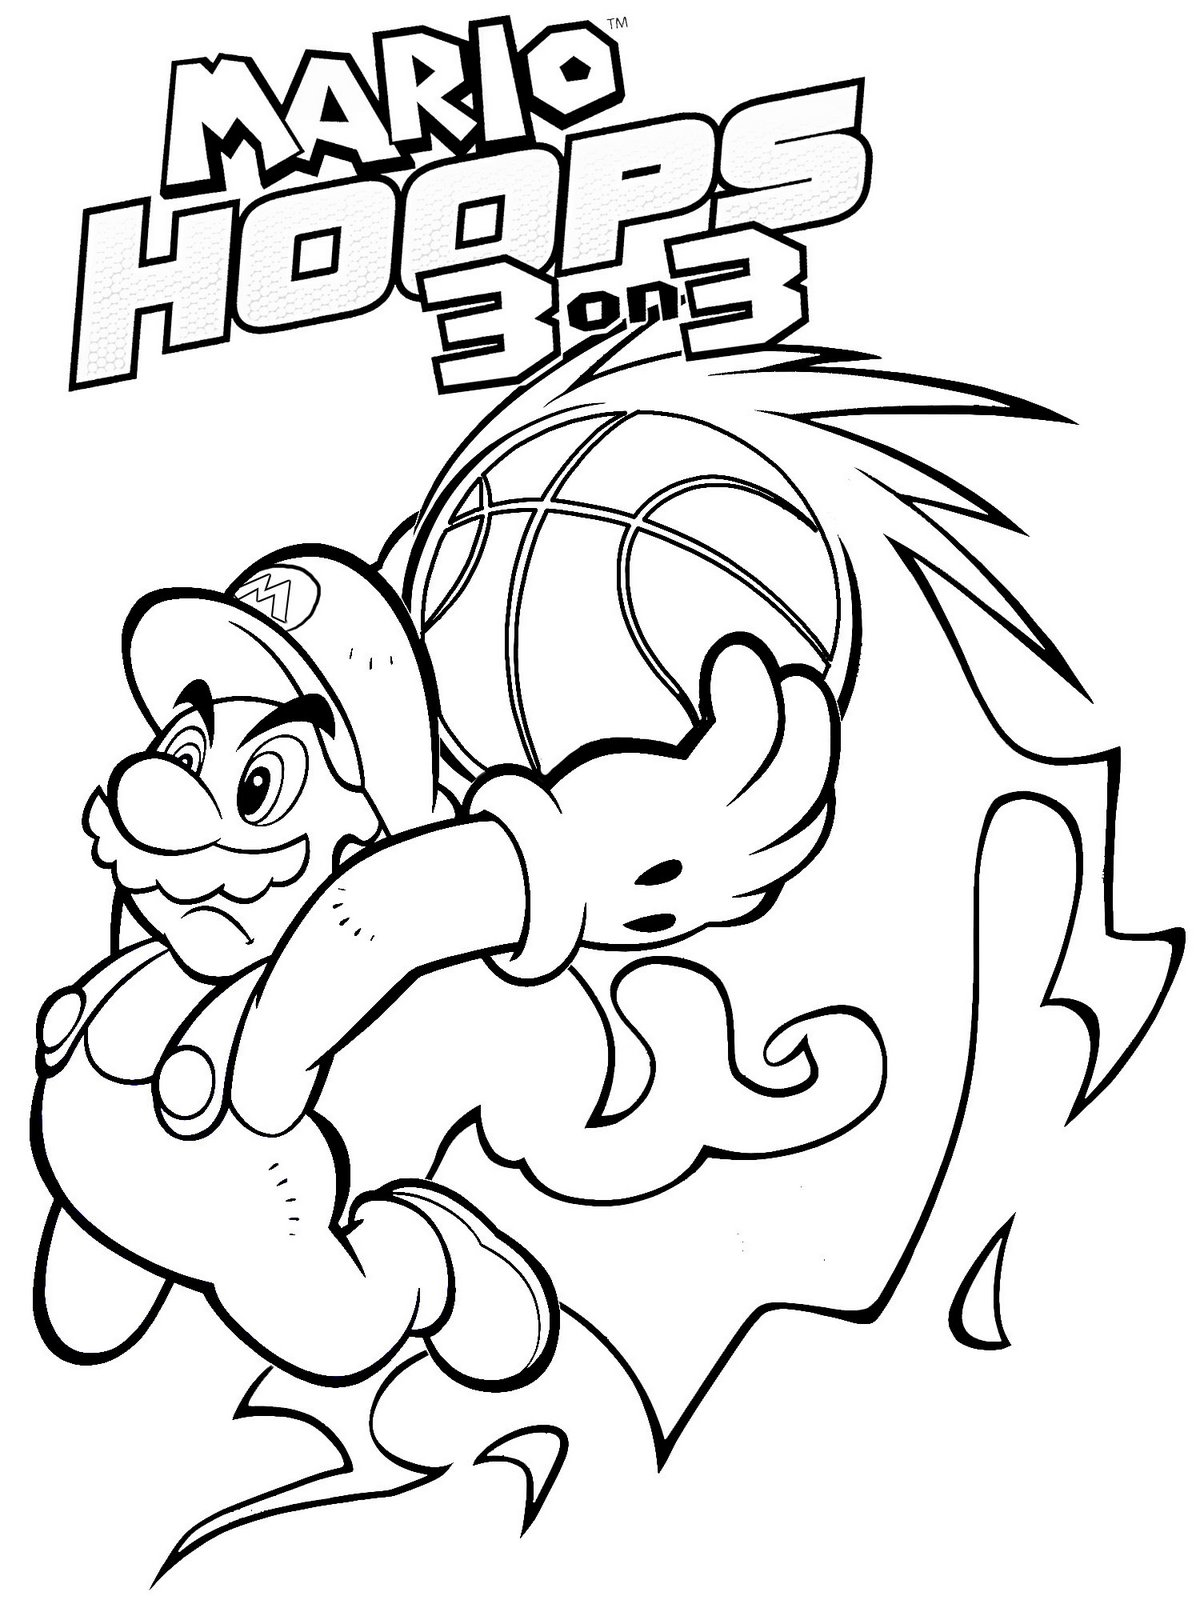 free mario coloring pages cat mario coloring pages at getdrawings free download coloring pages mario free